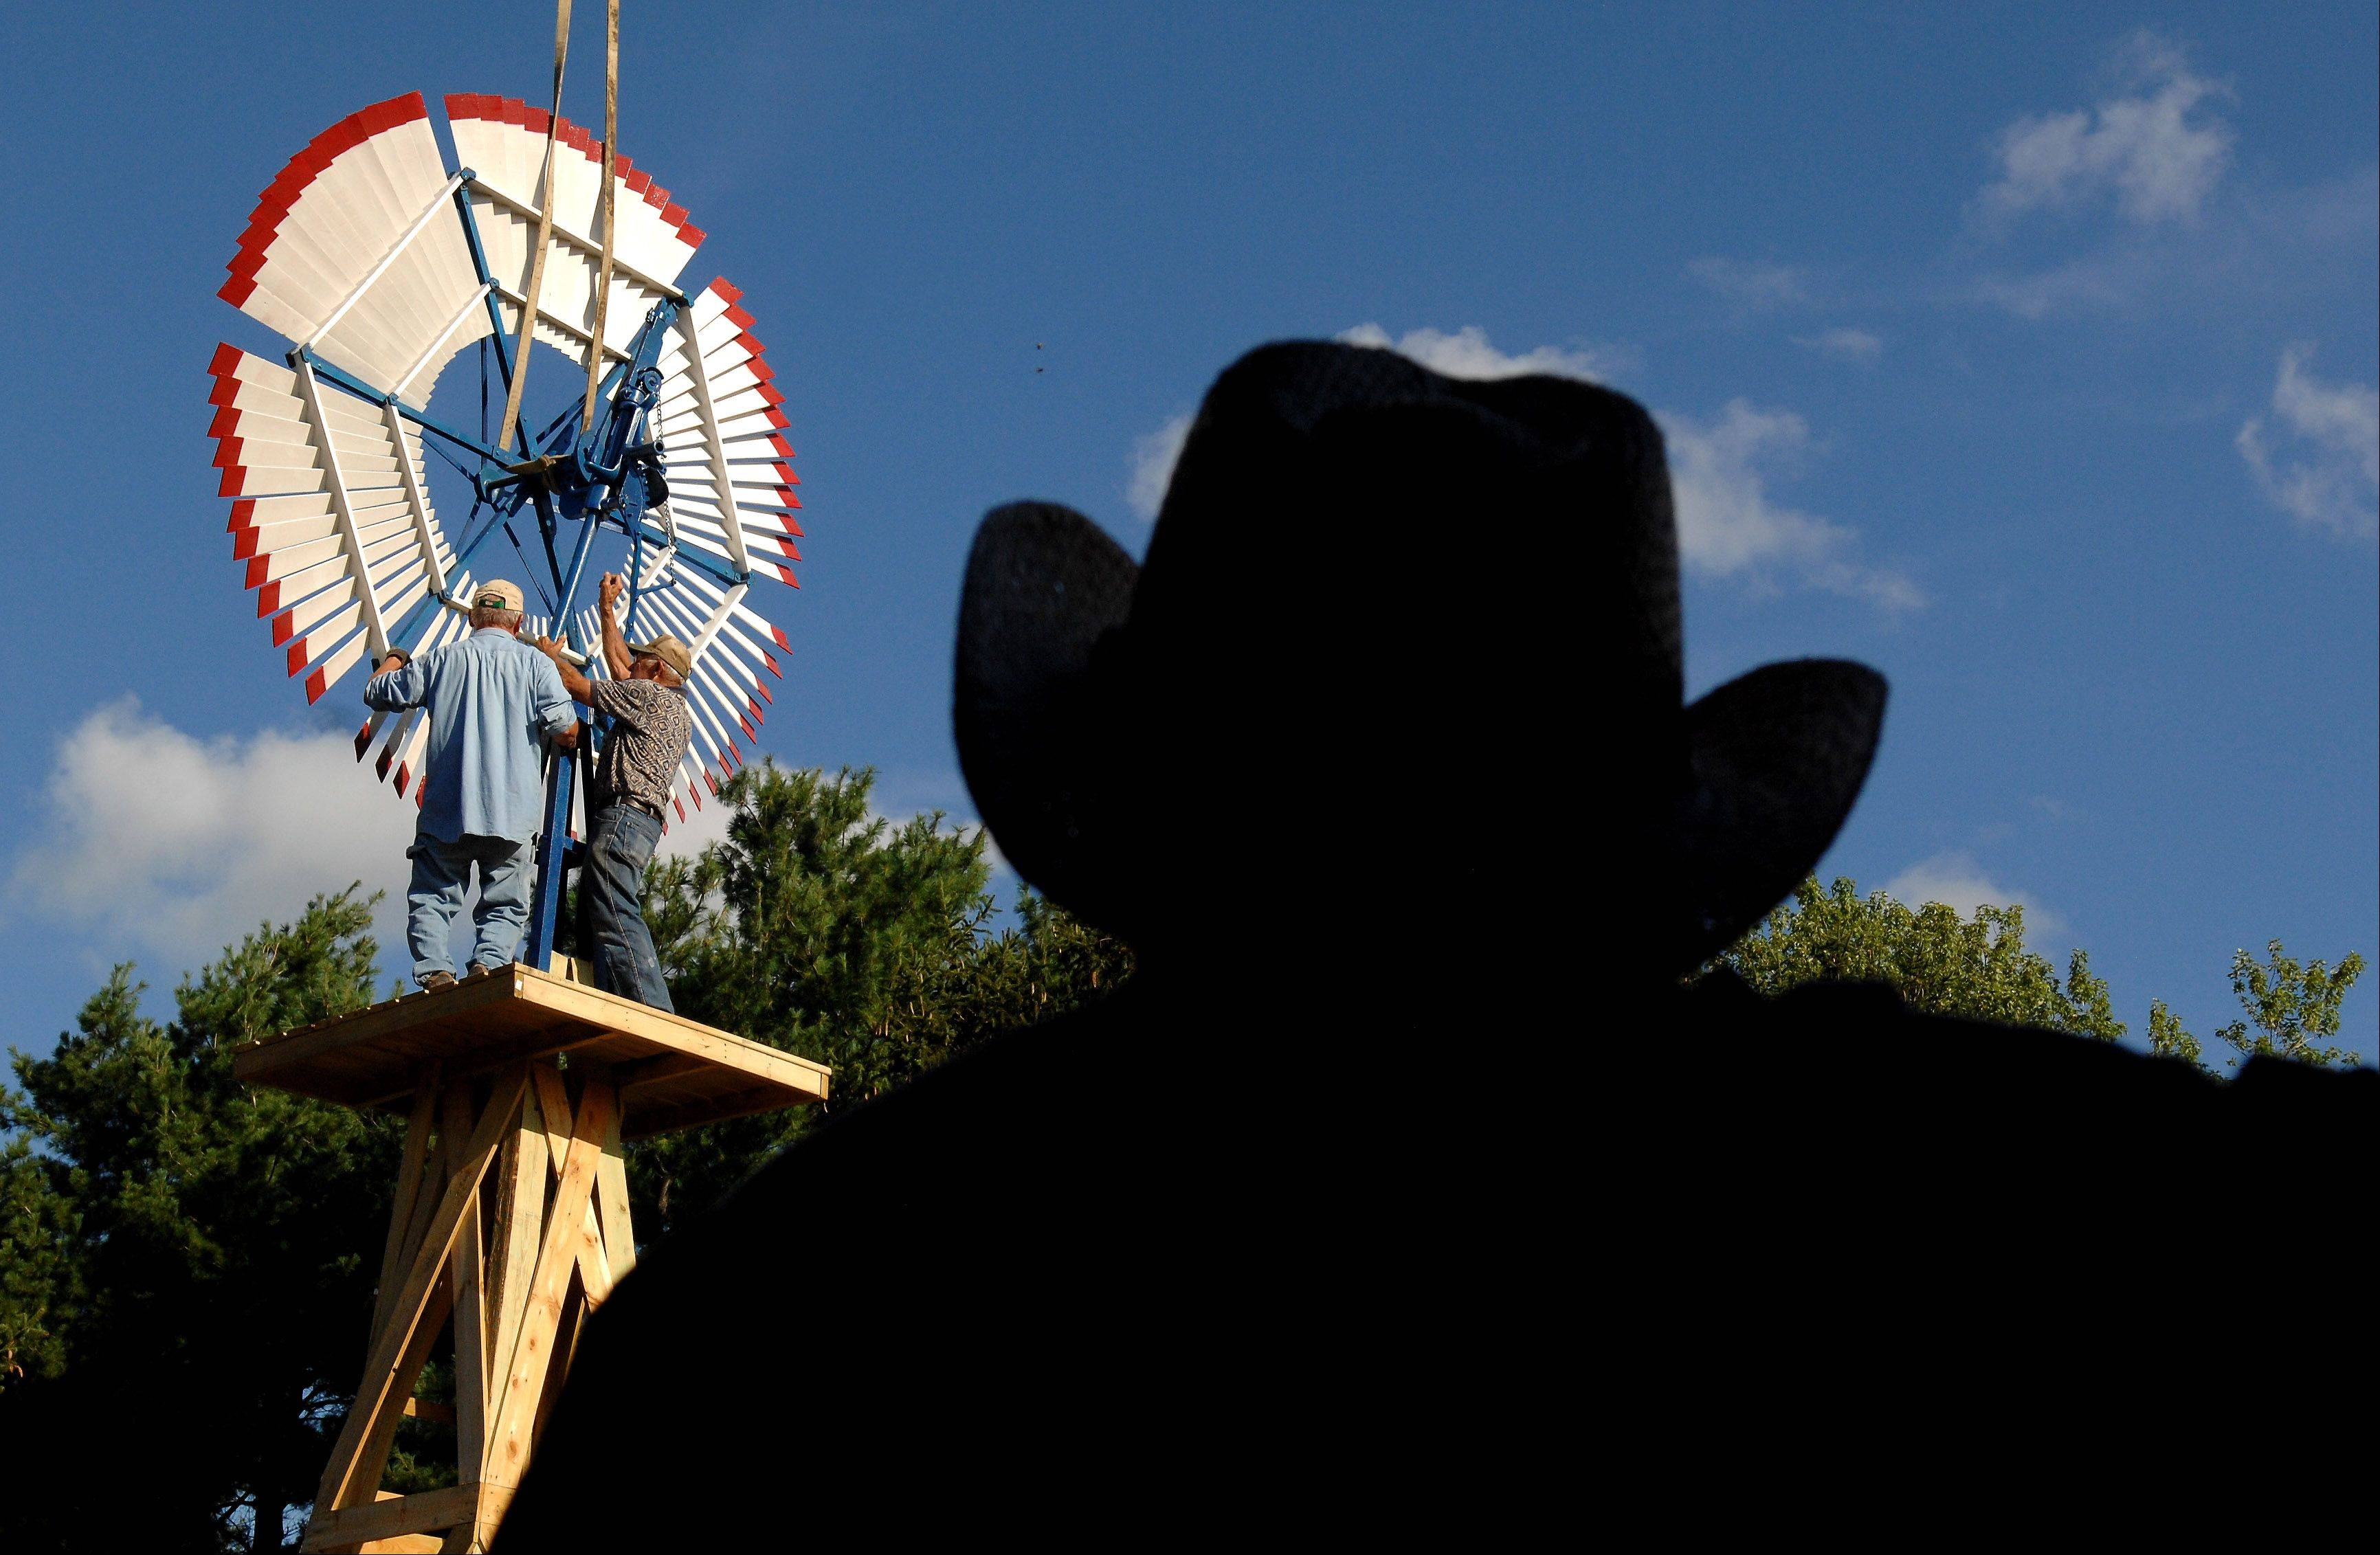 Jim Turner watches as Frank Engel, right on the windmill, and Bill Chidester work on installing a windmill at the top of a 25-foot tower at Turner's farm in Garden Prairie.